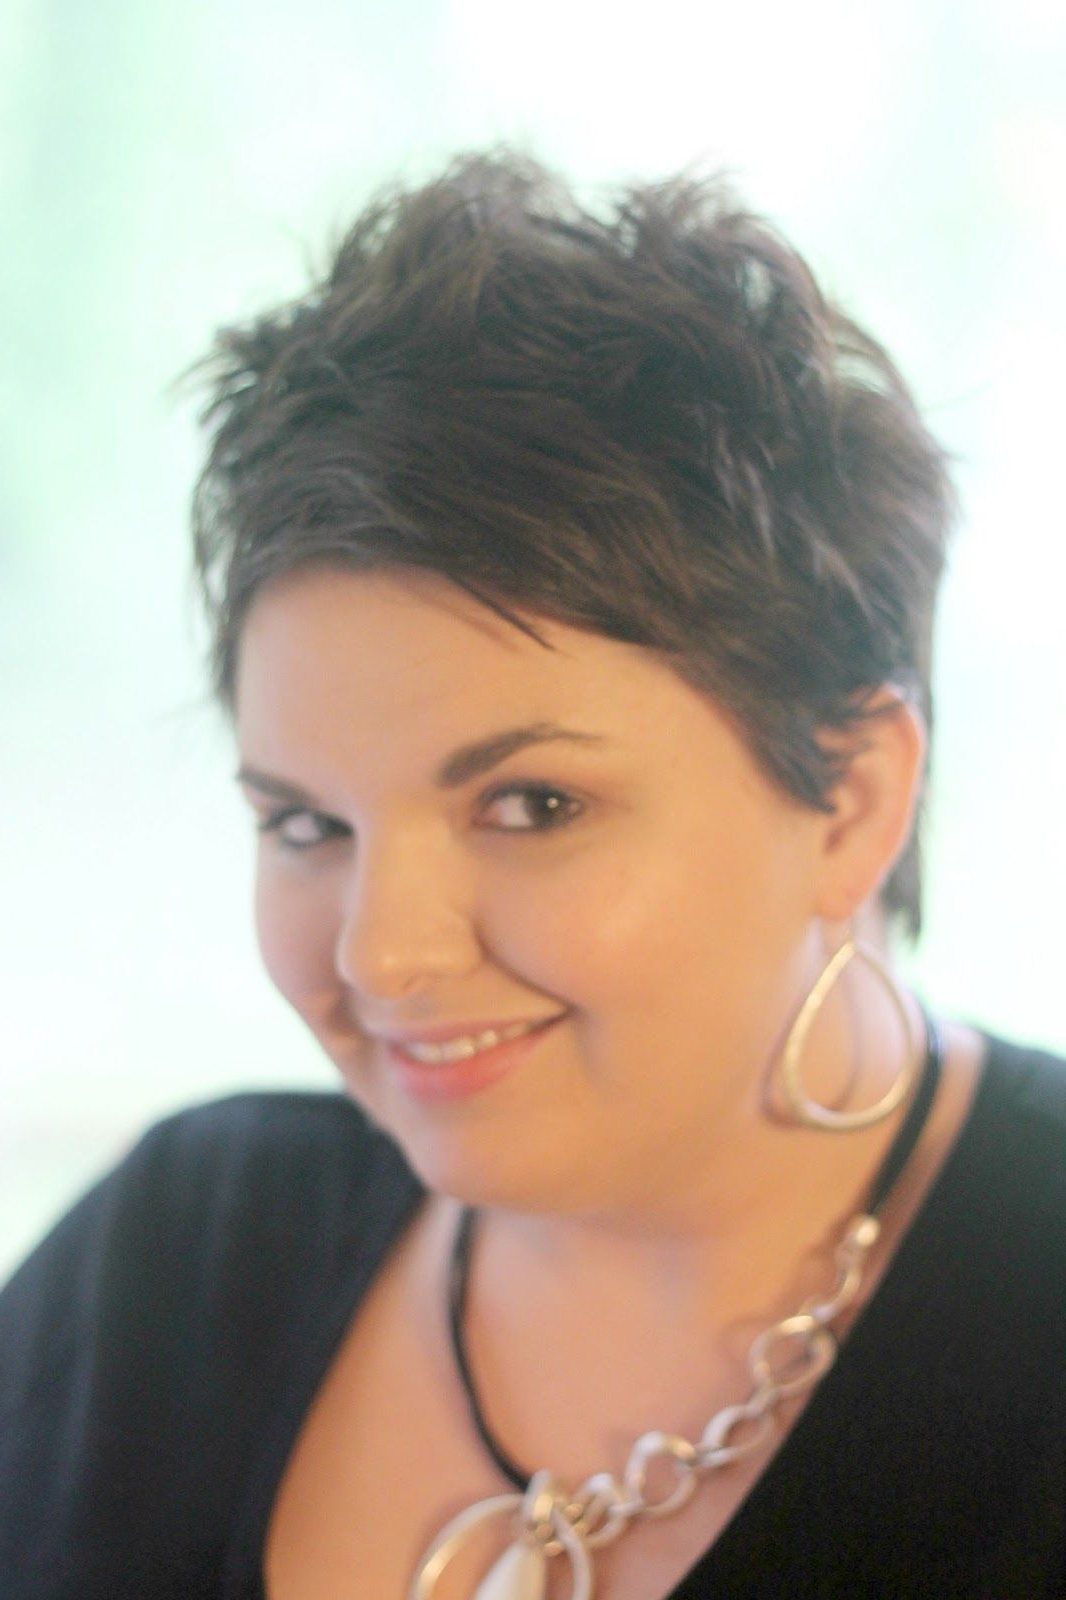 Recommended Hairstyles For Big Women: Short Cuts Hairstyles For Big With Regard To Fat Short Hair (View 2 of 25)